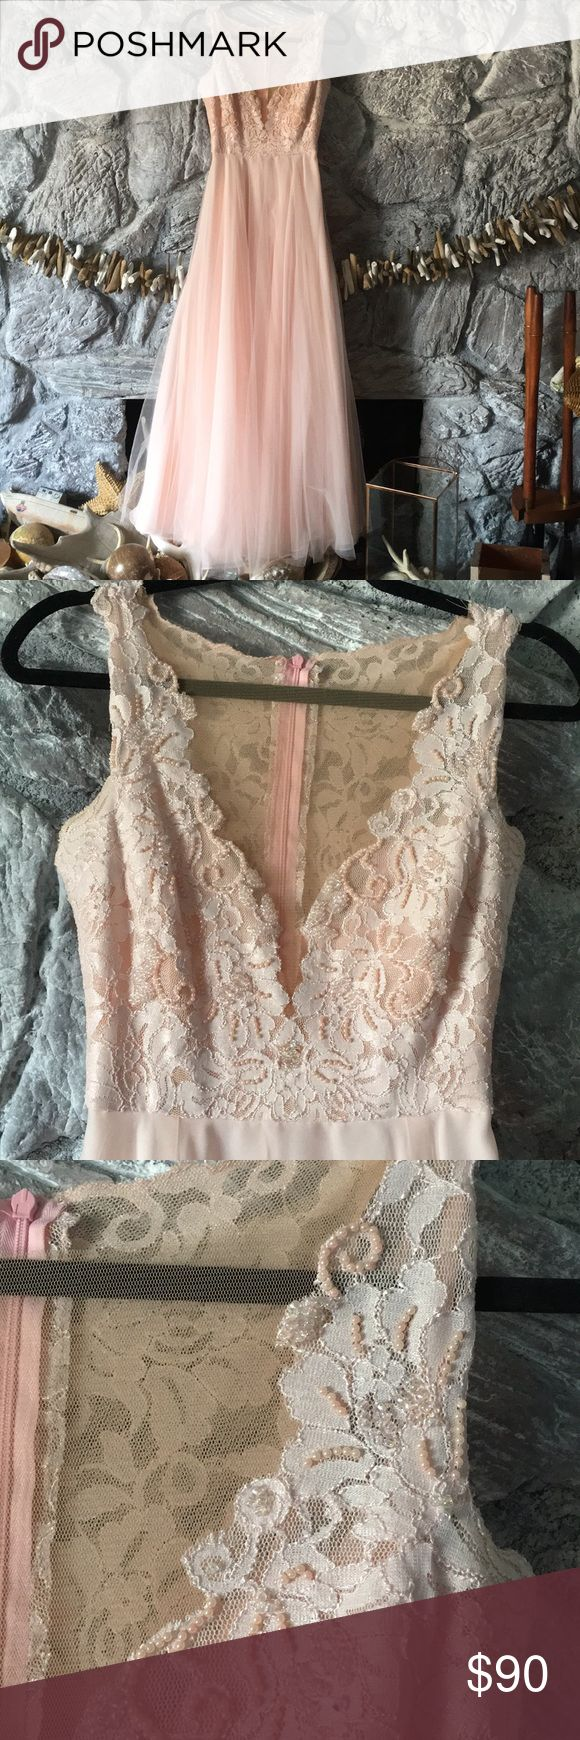 """Handmade and beaded prom dress. Professional seamstress made this dress for my daughter and it's flawless. It's pale pink and hand beaded lace. Measurements are approx. 15 1/2"""" from pit to pit. 15"""" shoulder to waist. 12"""" in flat on waist. 42"""" waist to hem. Petticoat slip which is separate from dress included. She wore a gold metal belt which is not included. For reference she is a 32C bra Dresses Prom #handmadebeltsfordress"""